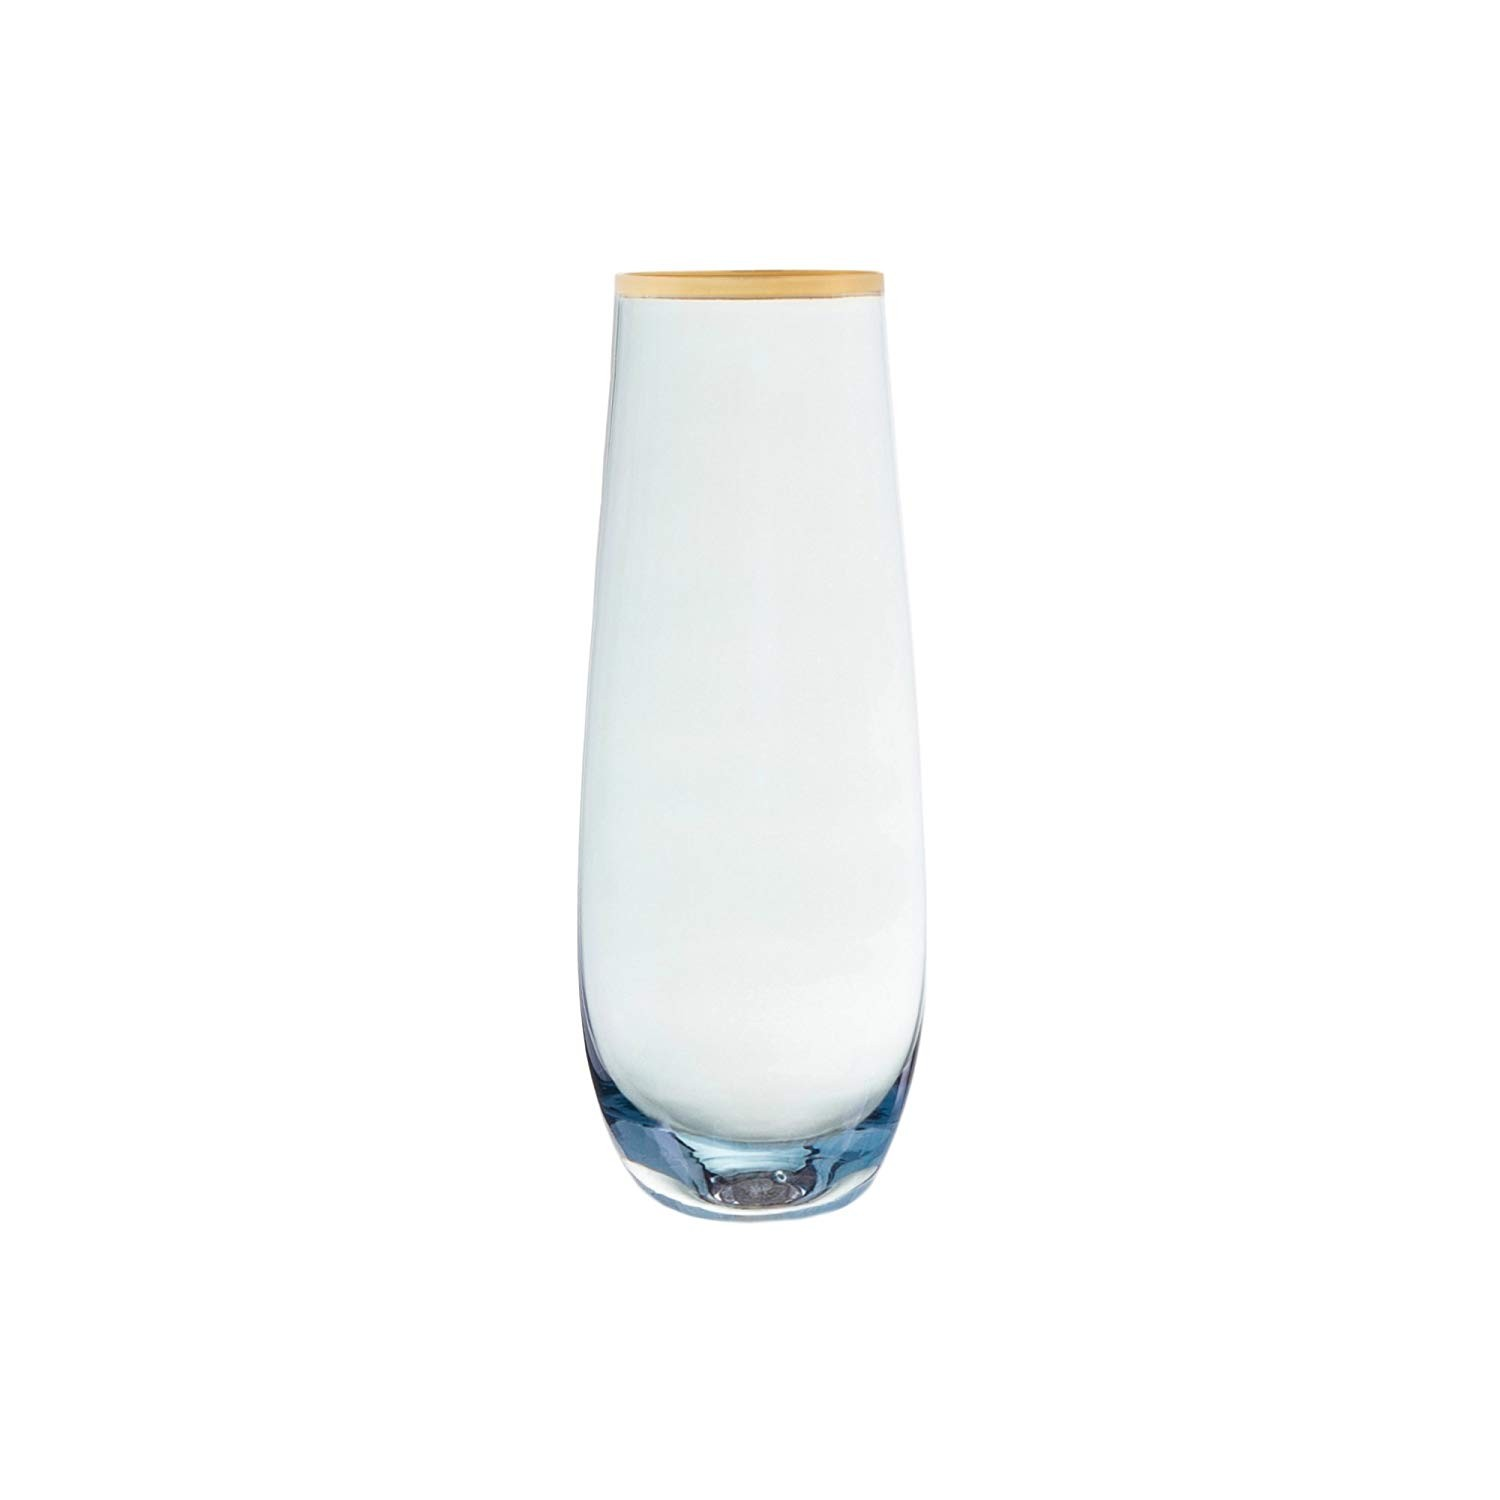 Fifth Avenue Crystal Vivienne Set of 4 Stemless Flutes-Blue/Gold